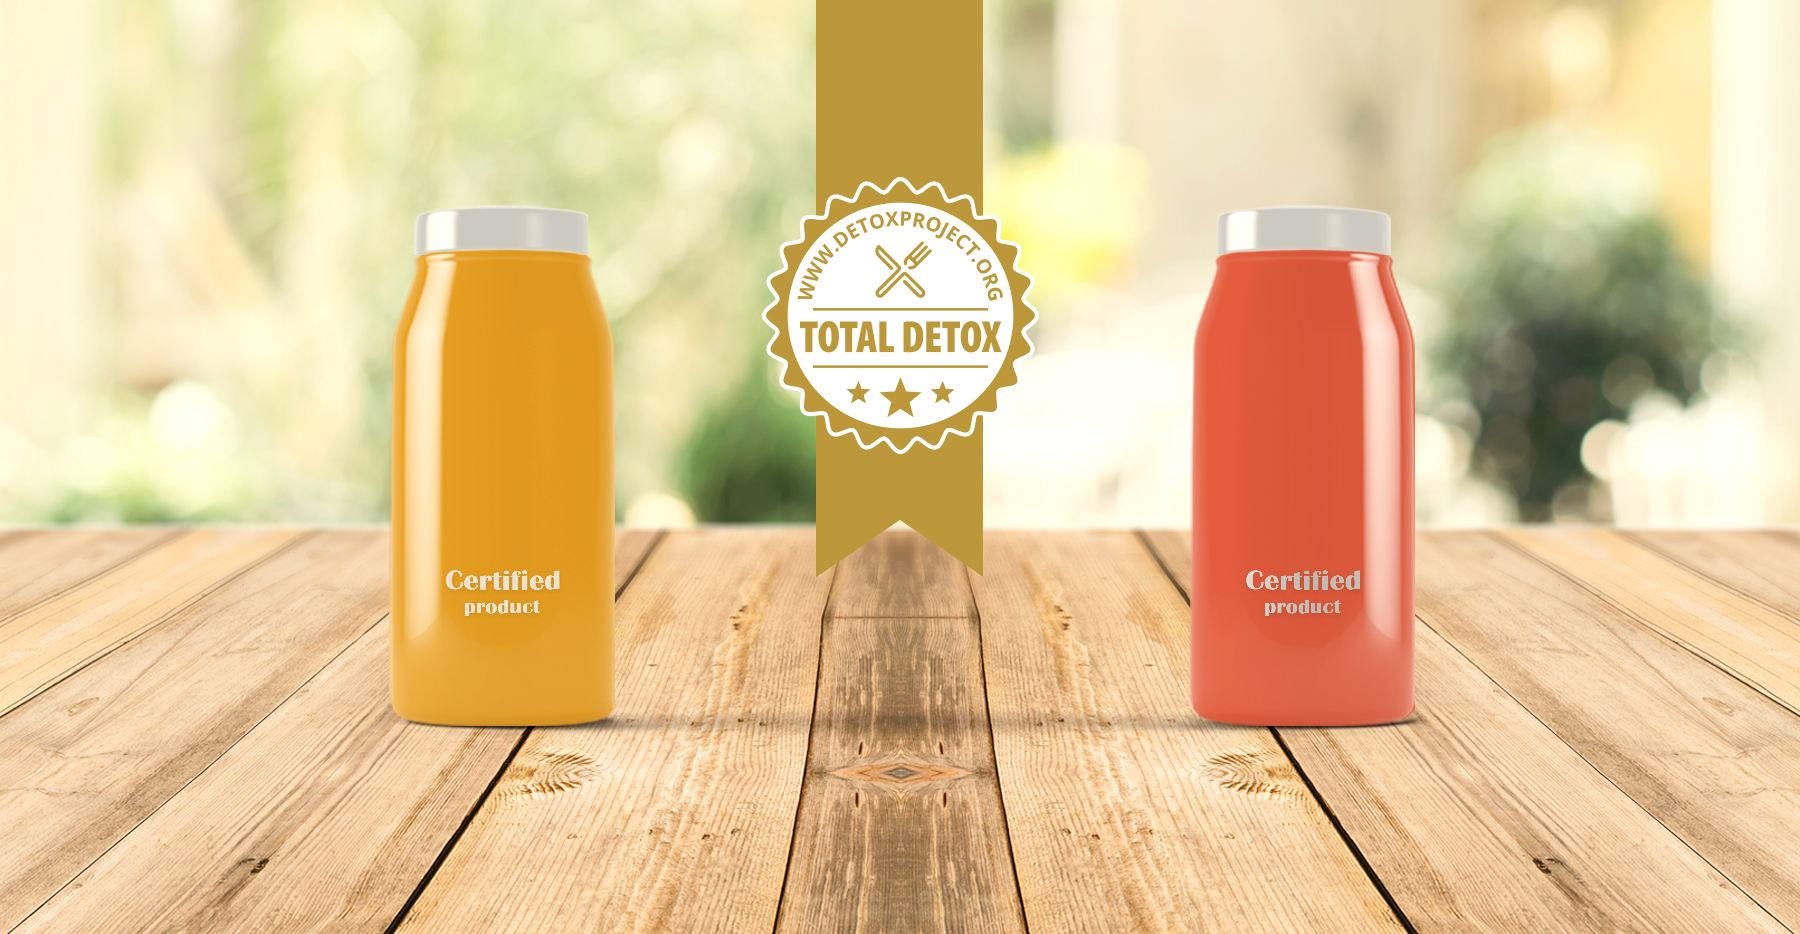 Detox Certification Brings New Transparency to Unregulated Multi-Billion Dollar Industry